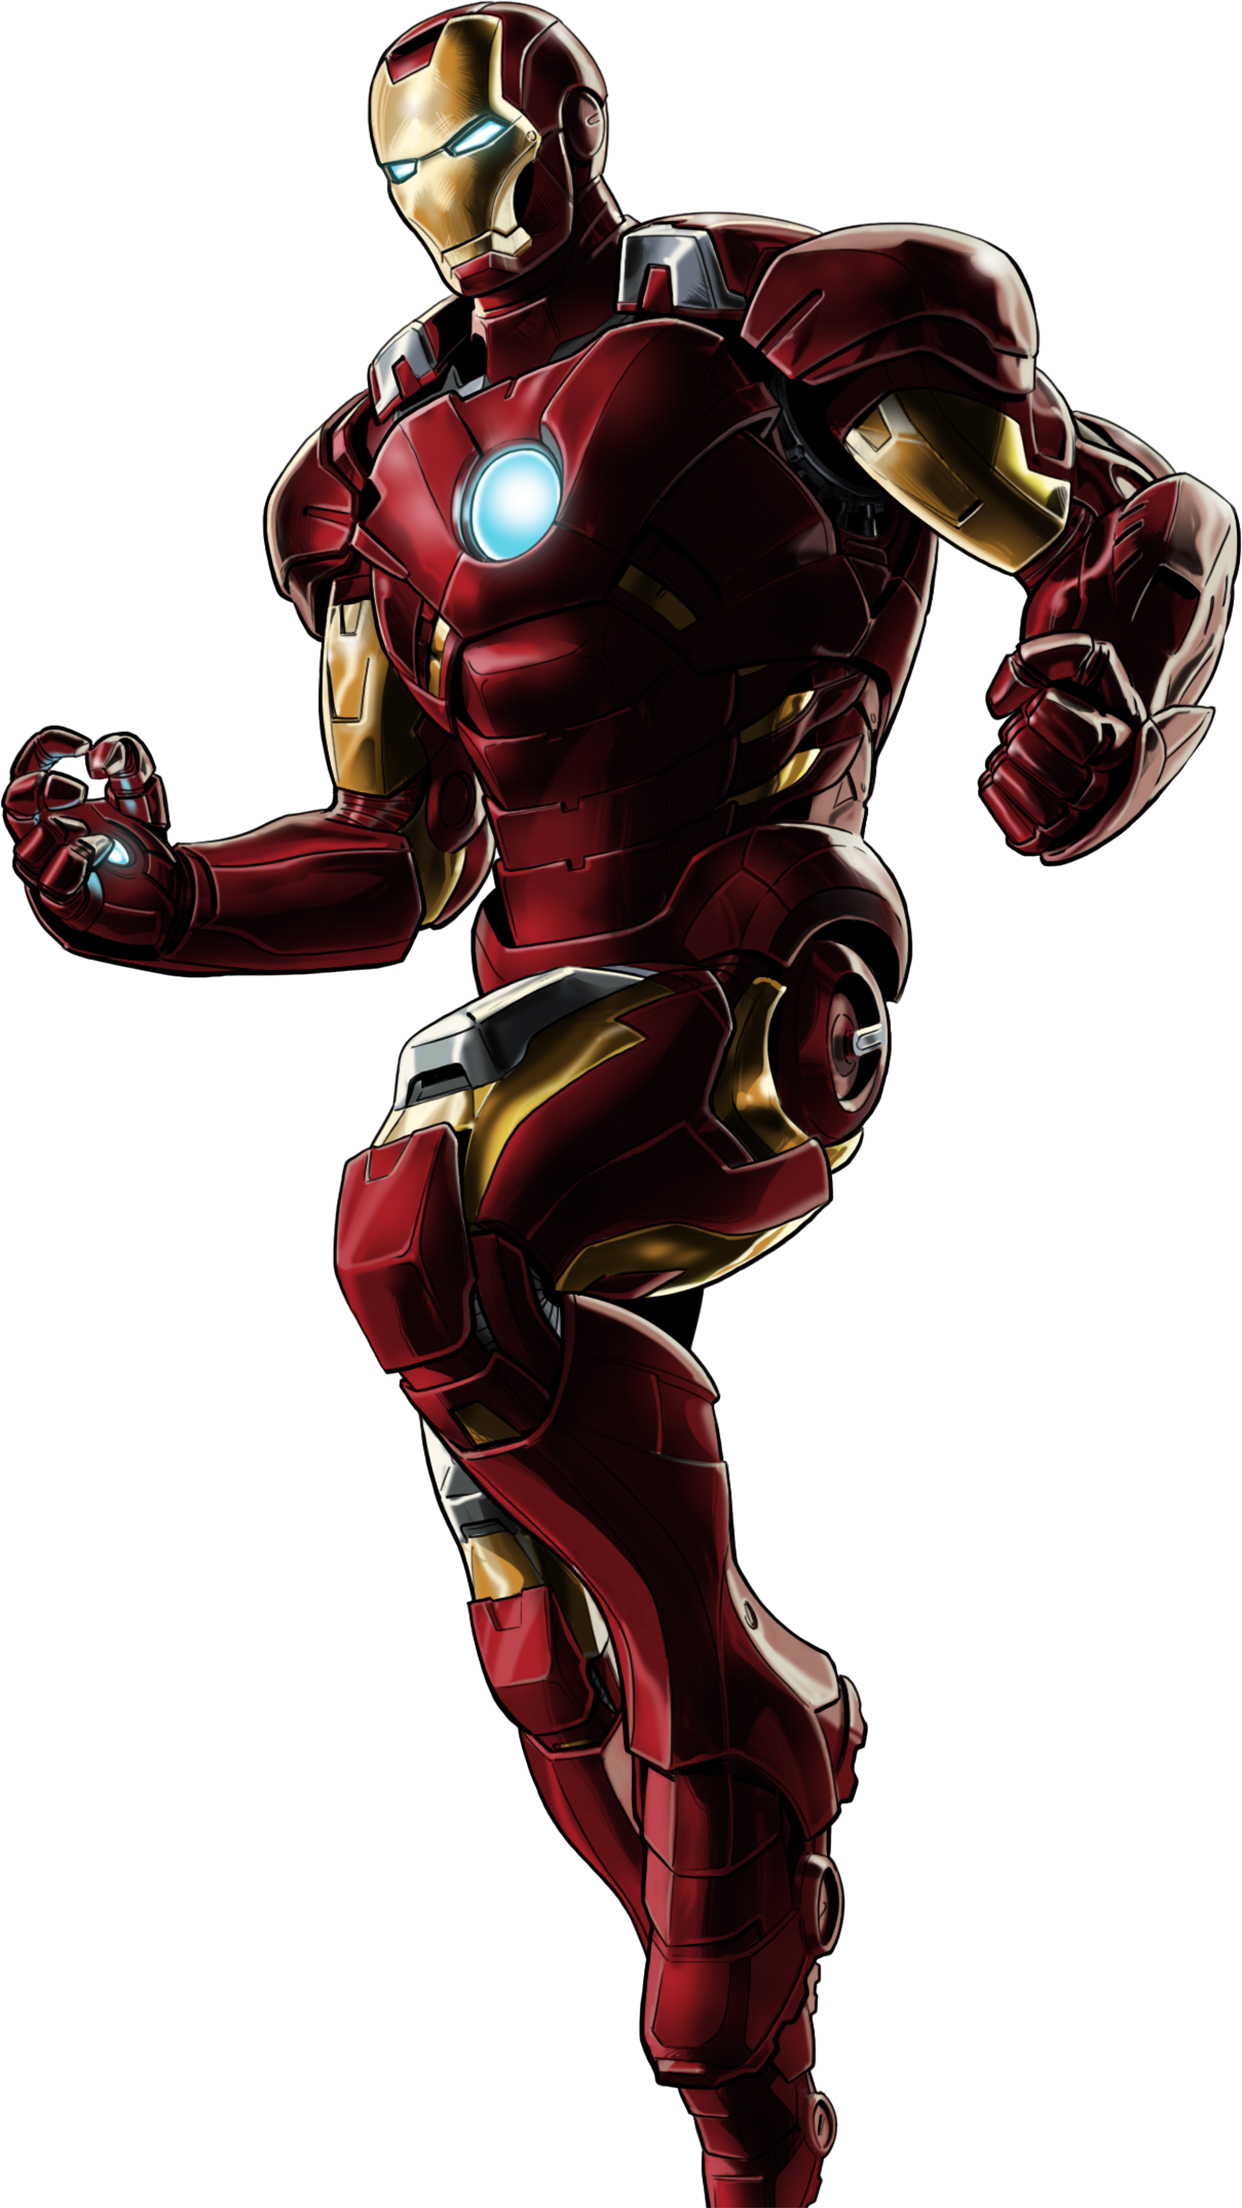 Iron Man Standing 3Wallpapers iPhone Parallax Iron Man : Standing